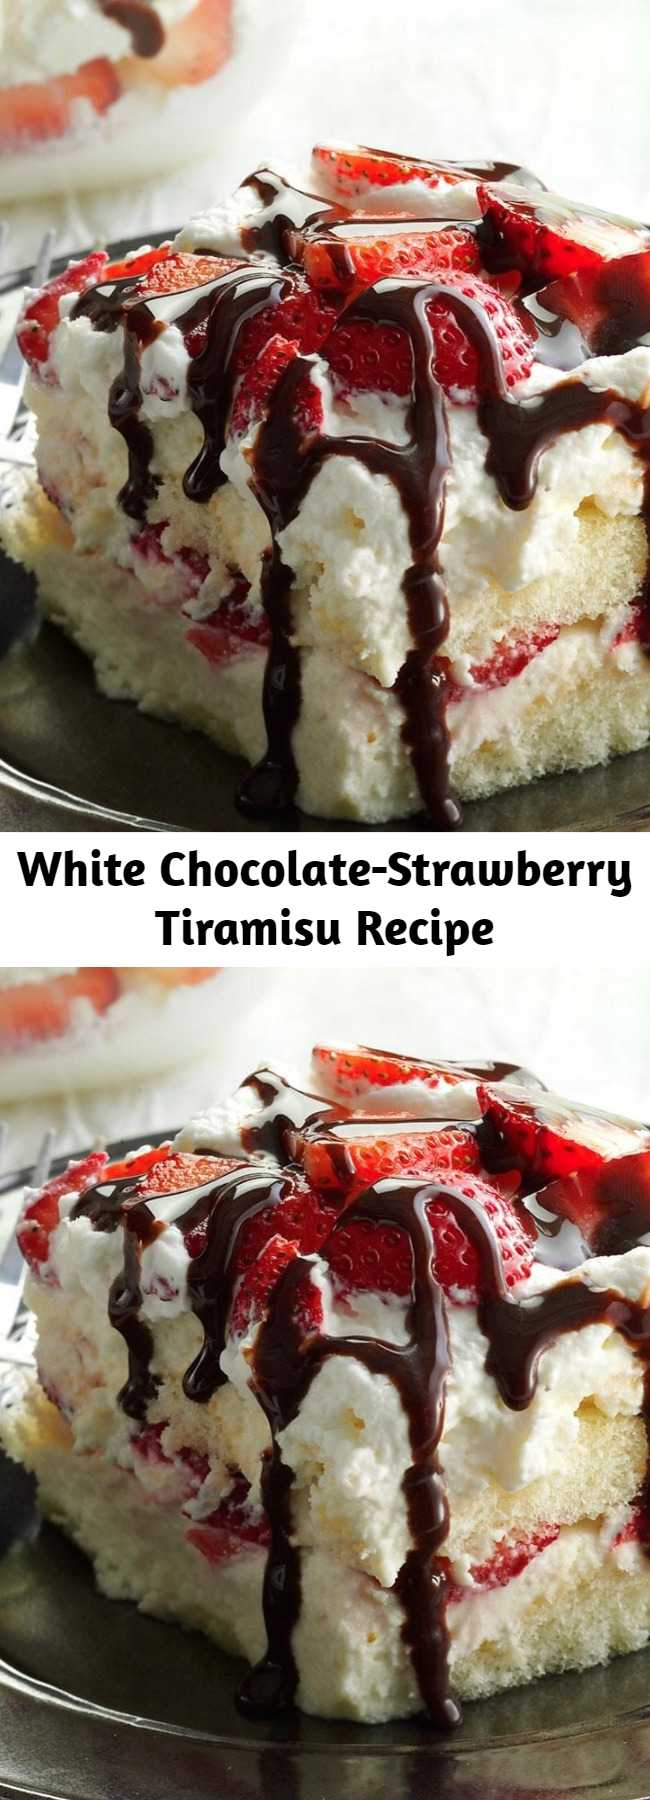 White Chocolate-Strawberry Tiramisu Recipe - Here's a twist on a classic dessert that highlights another flavor combo my husband and I love: strawberries and white chocolate. Lighten it up if you'd like—I've had good luck with light nondairy whipped topping and reduced-fat cream cheese.